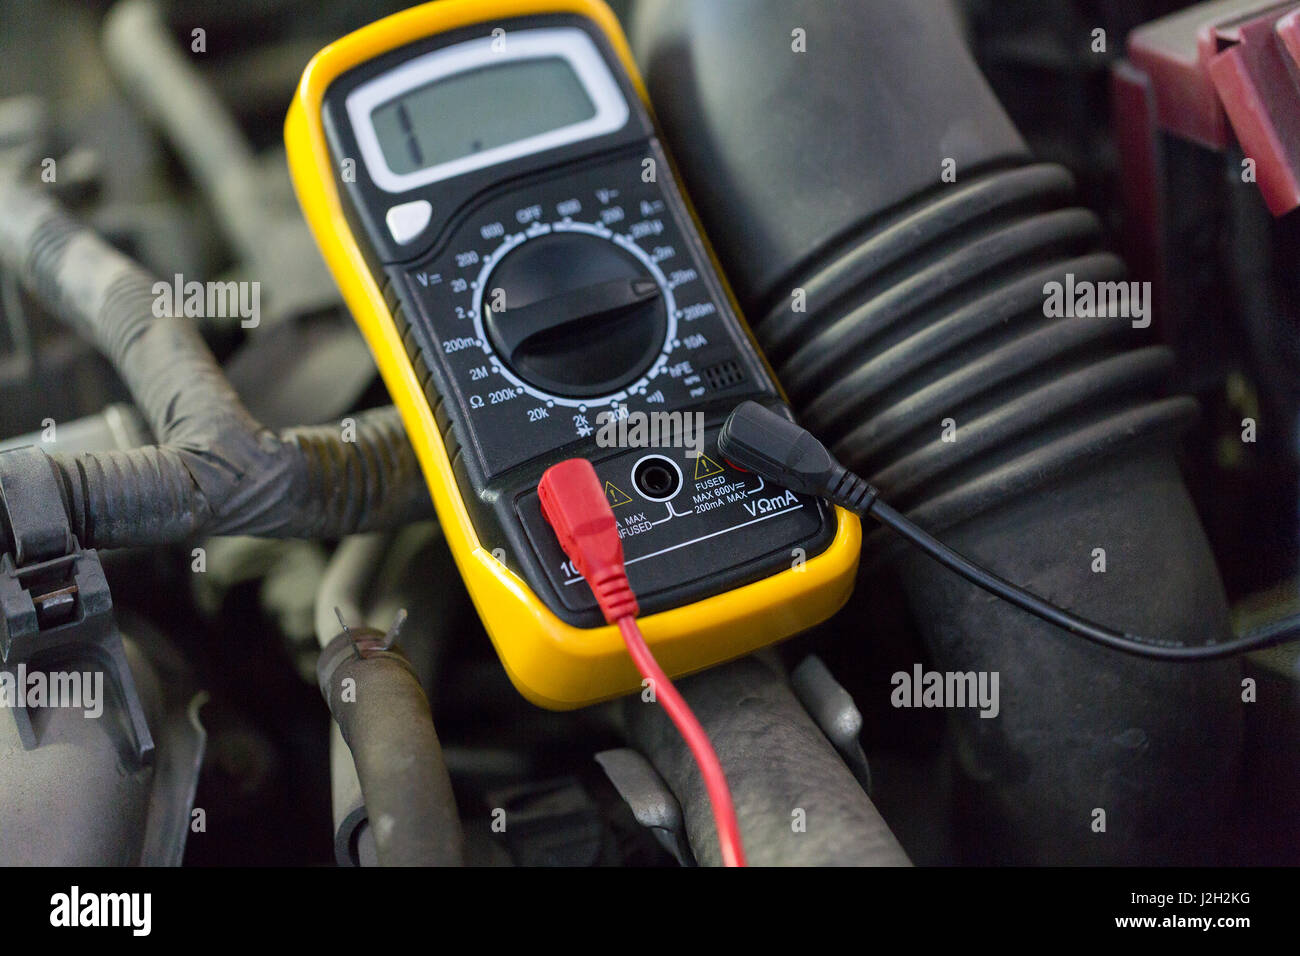 Multimeter Or Voltmeter Testing Car Battery Stock Photo 139287556